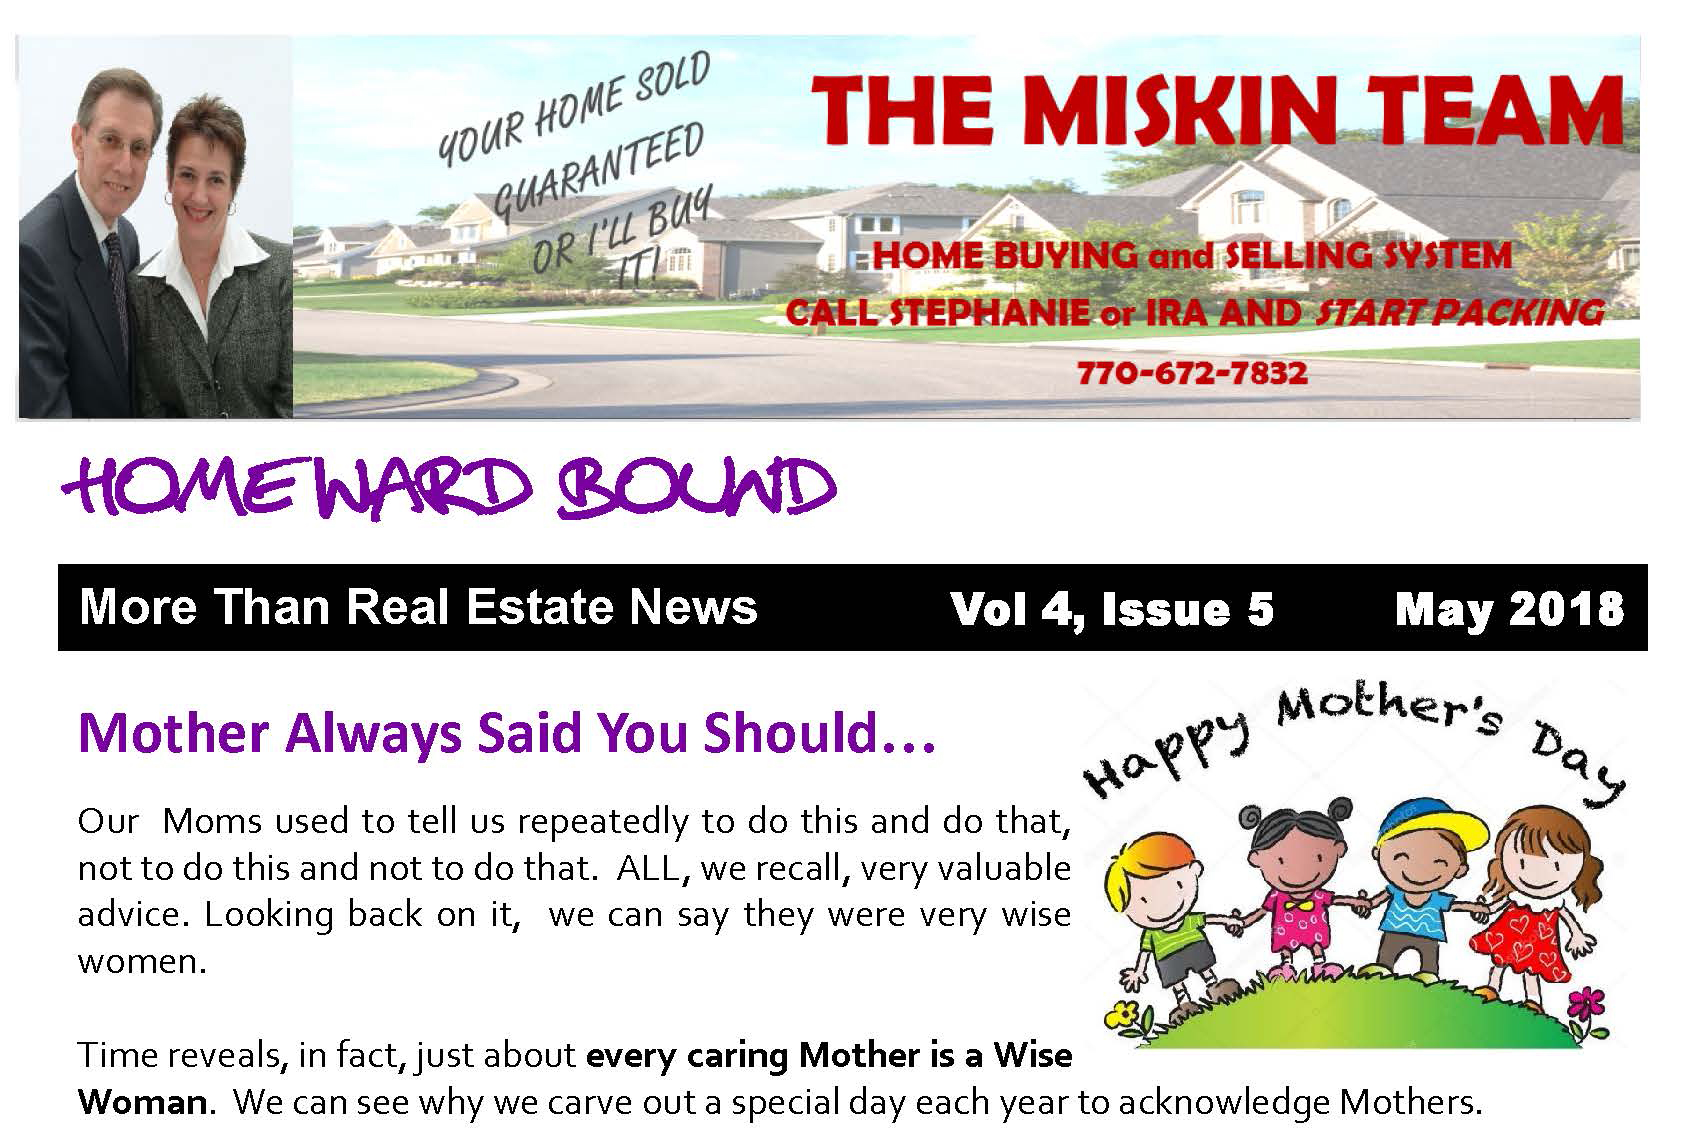 Home'Ward Bound Monthly Miskin Team Newsletter May 2018